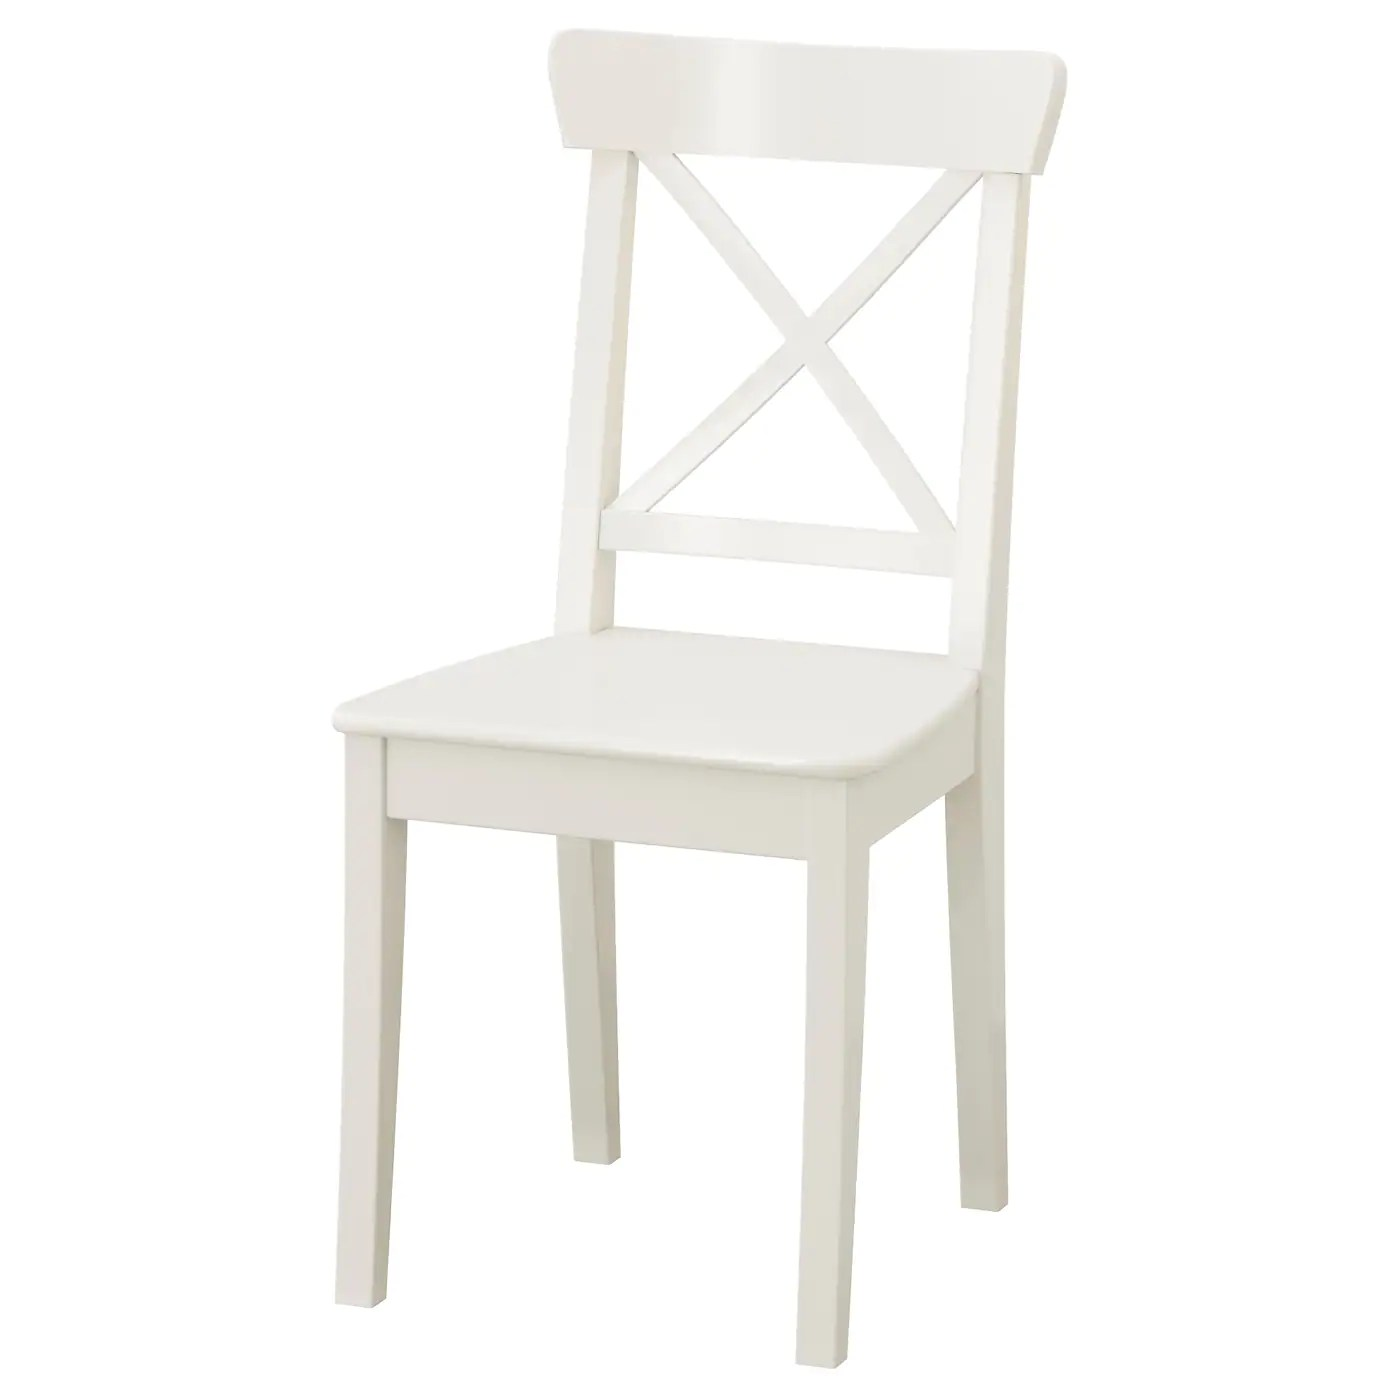 Ikea Plastikhocker Chairs Upholstered Foldable Dining Chairs Ikea